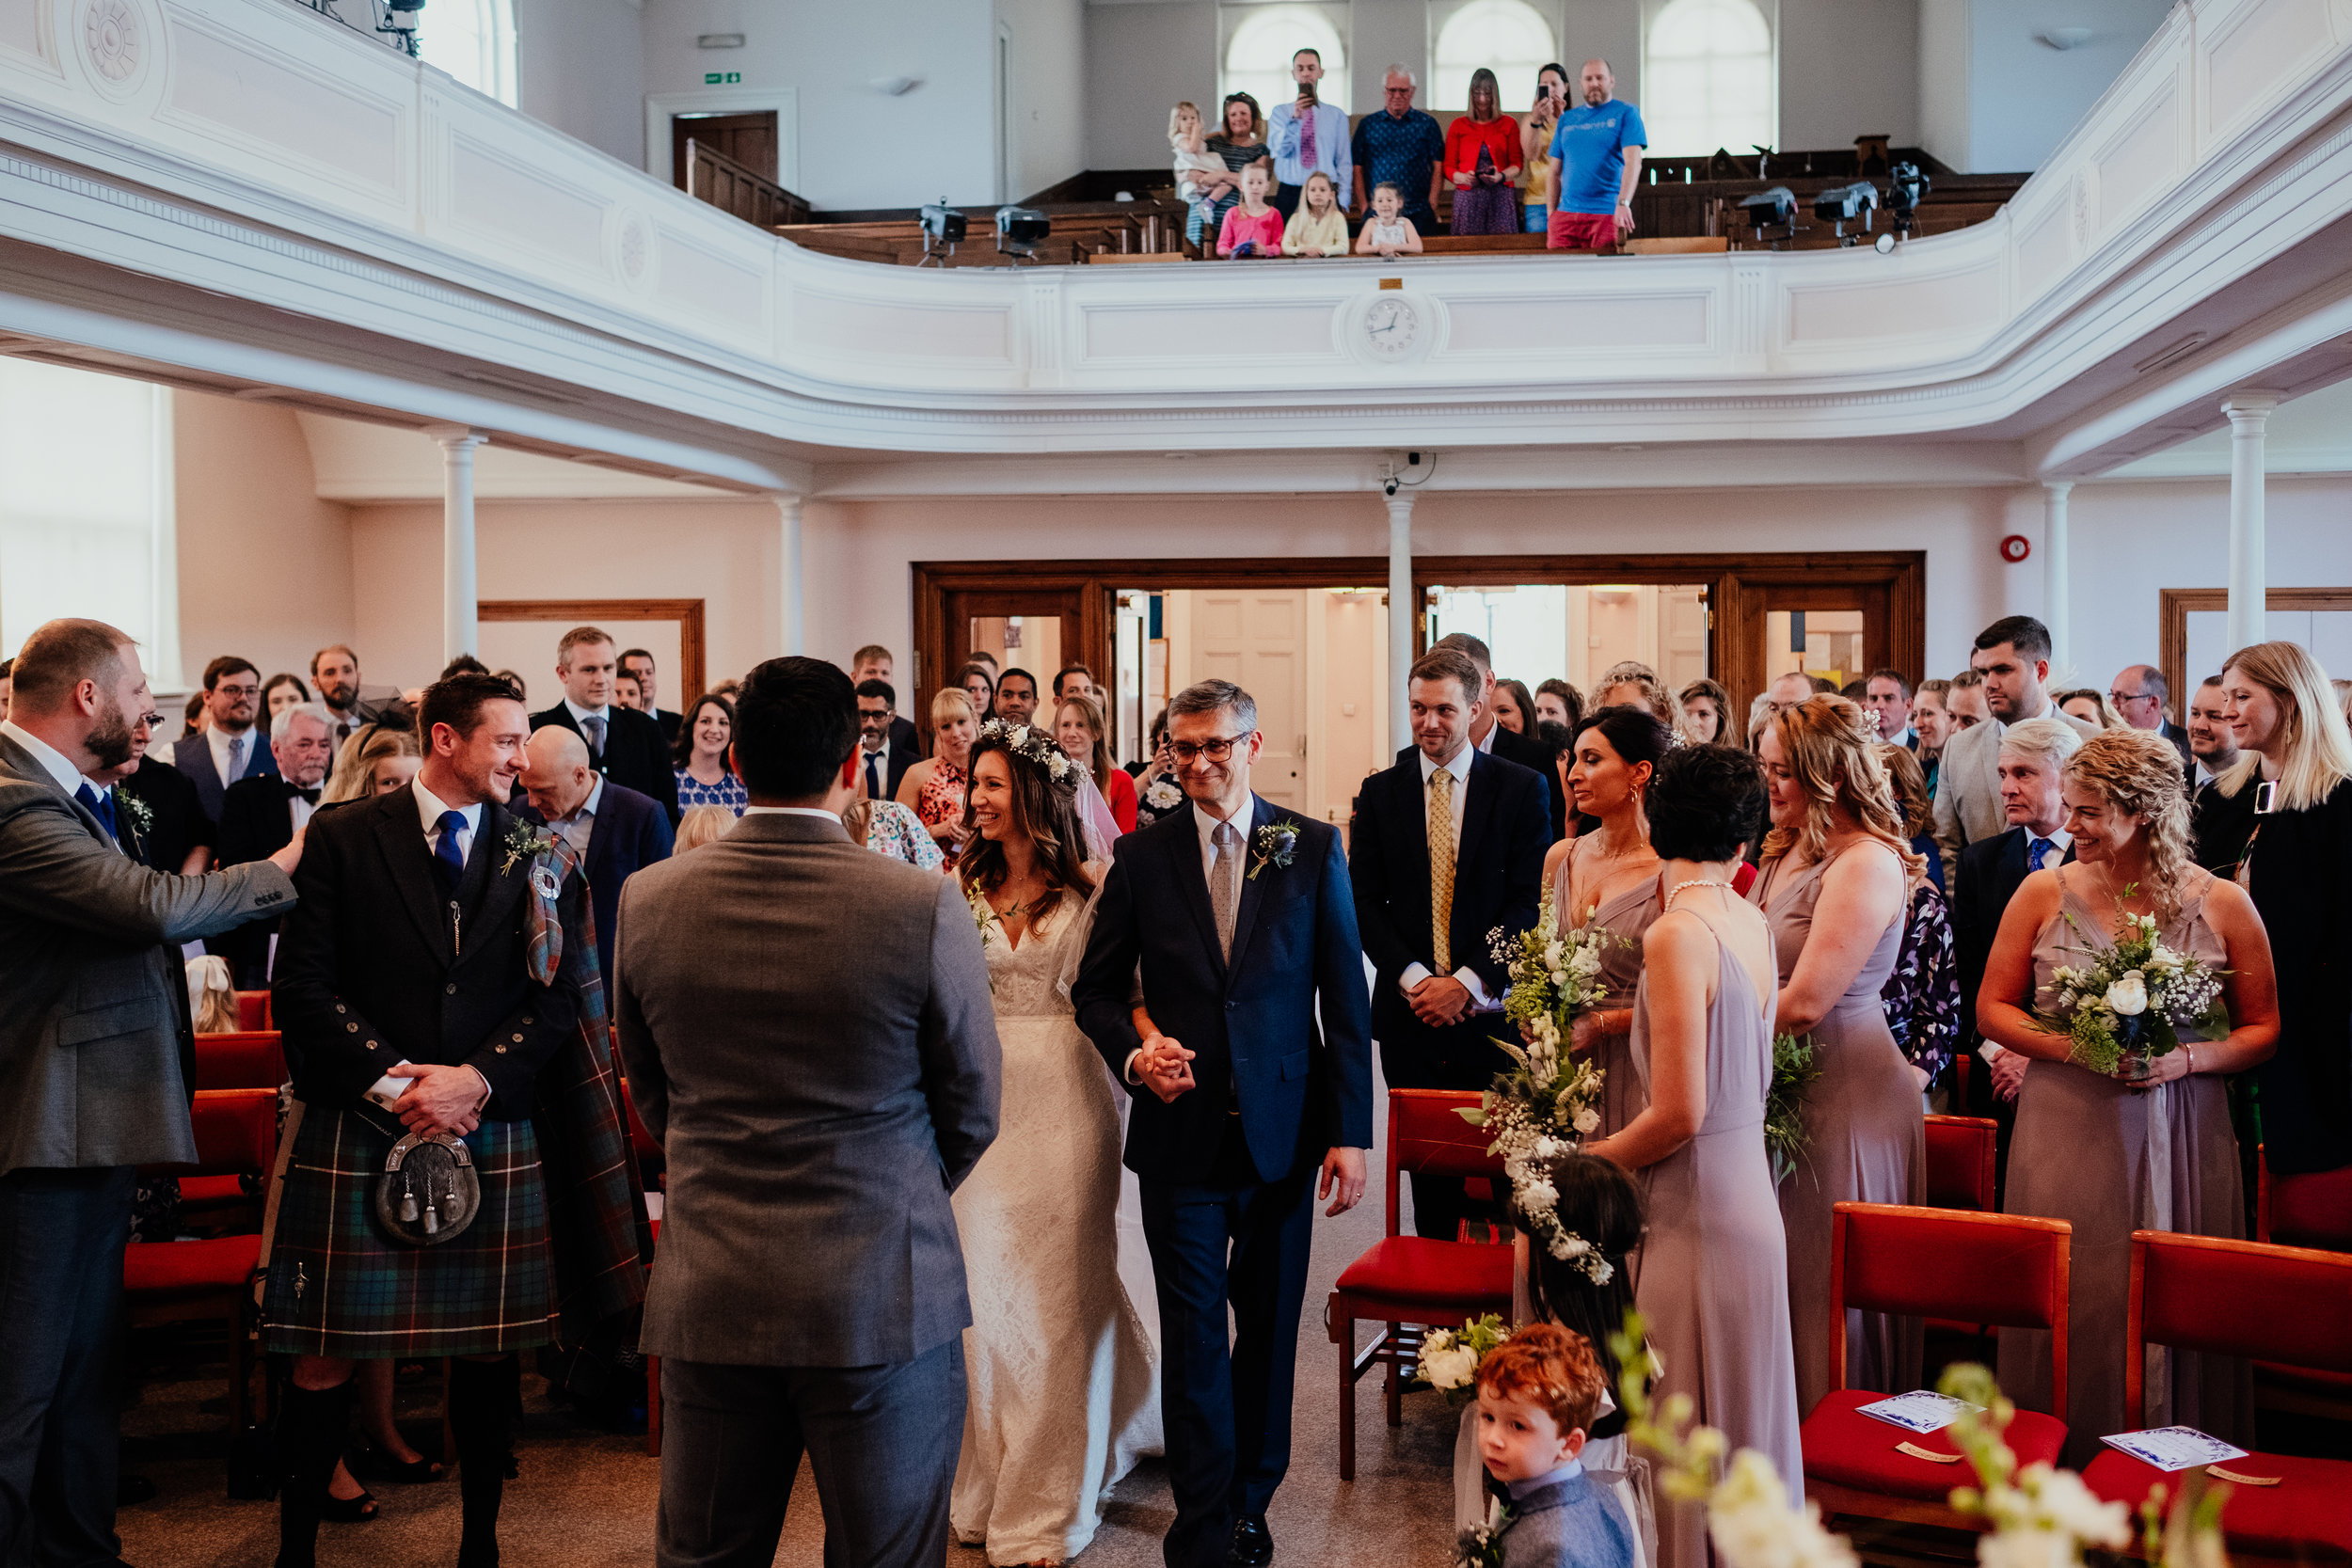 Groom sees his bride for the first time as she walks up the aisle with her Father